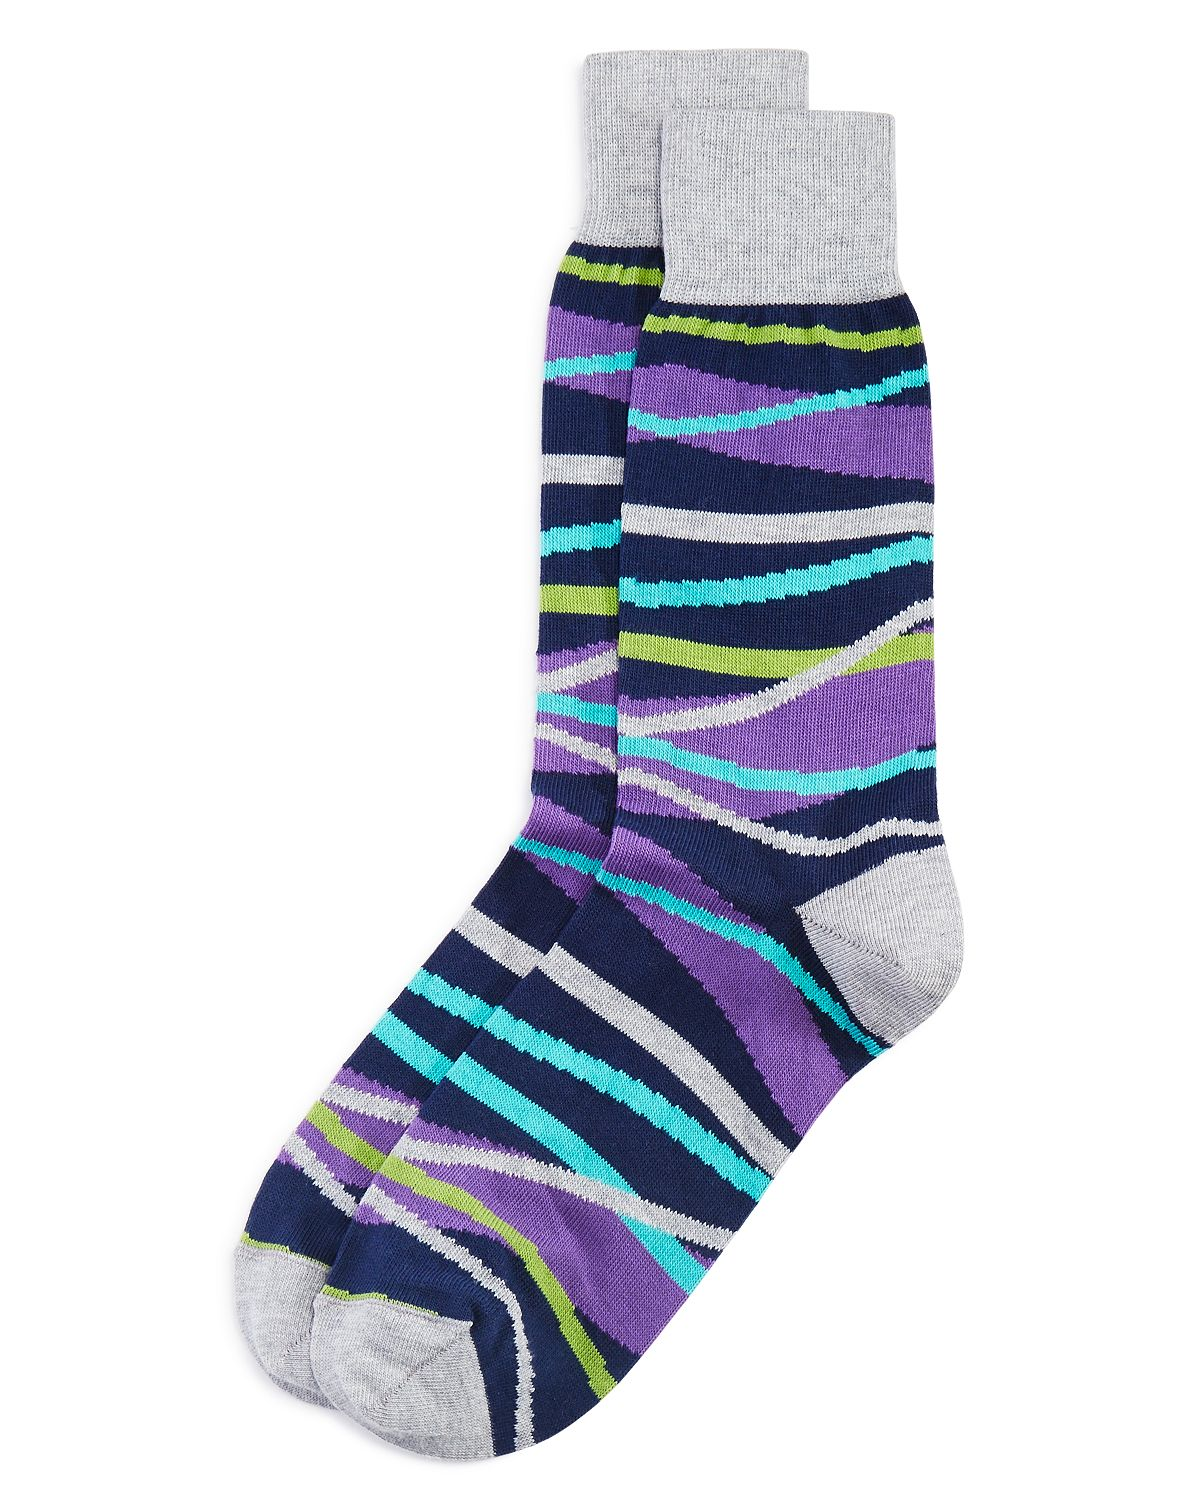 Modern Striped Socks